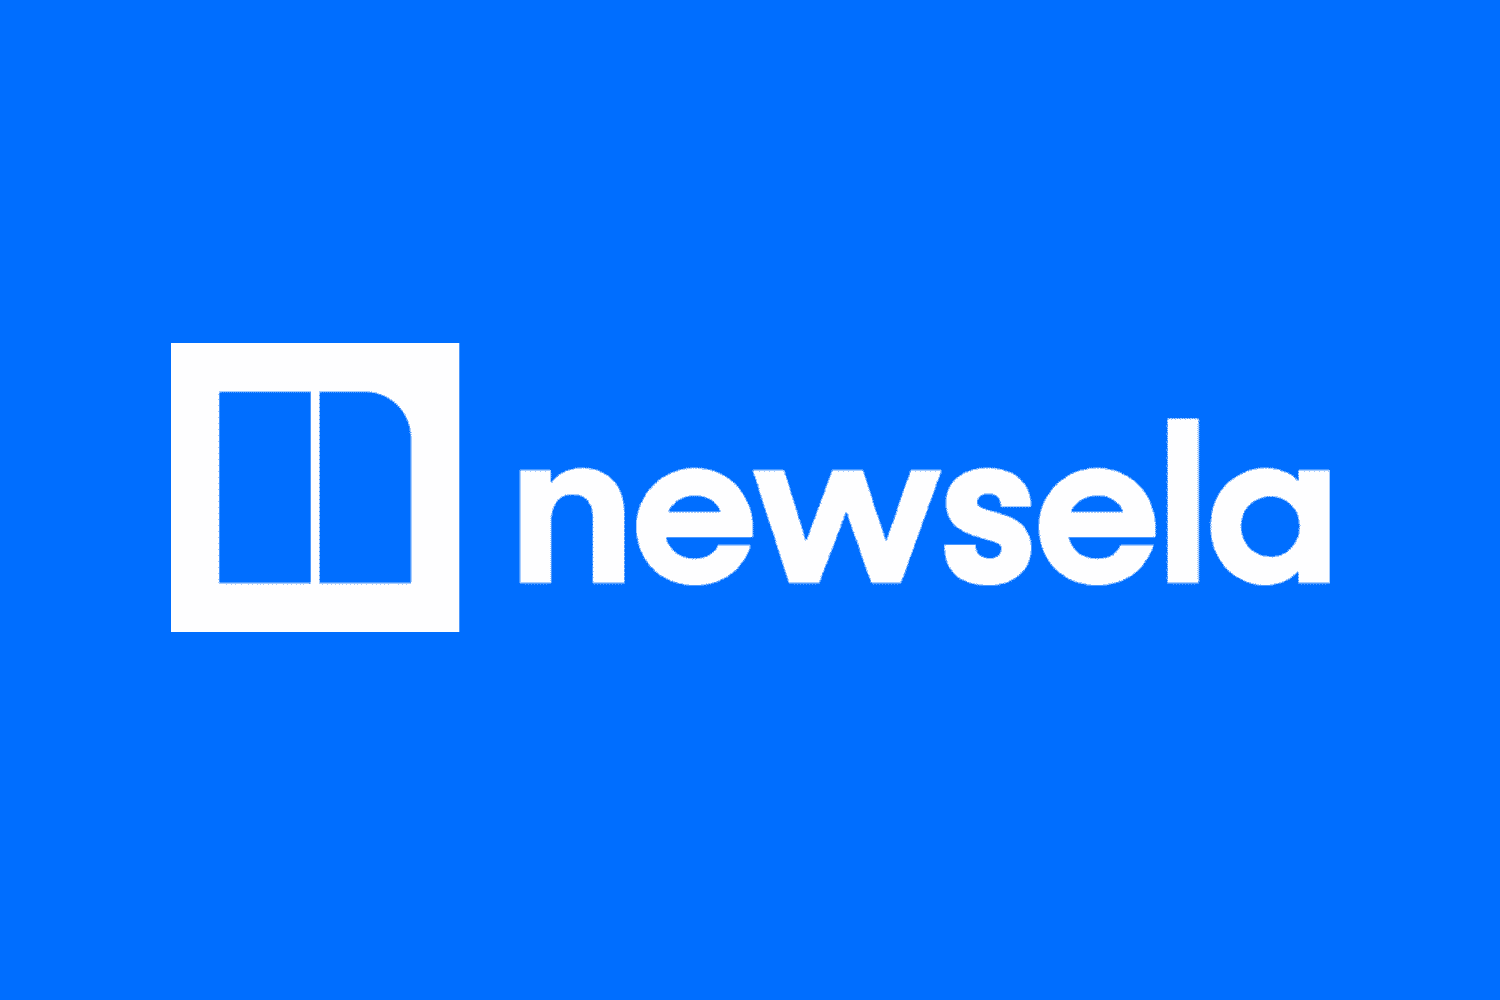 Image for article Newsela raises $50M to expand a content repository for K-12 learning that replaces traditional textbooks